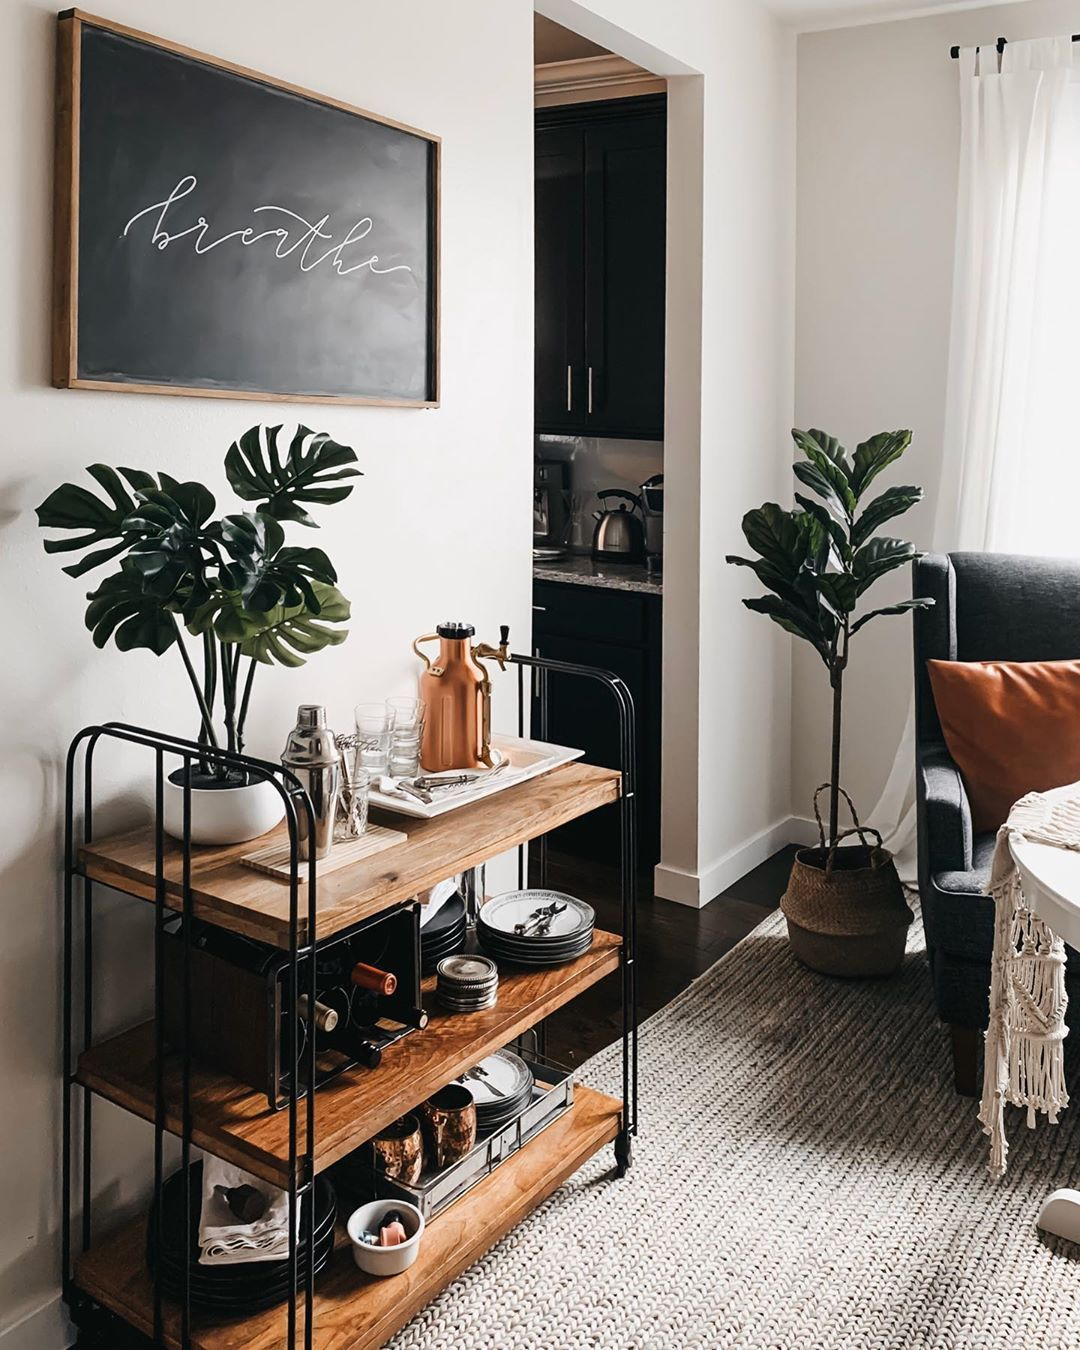 Bar Cart Styling Ideas With Target Hearth And Hand Cot